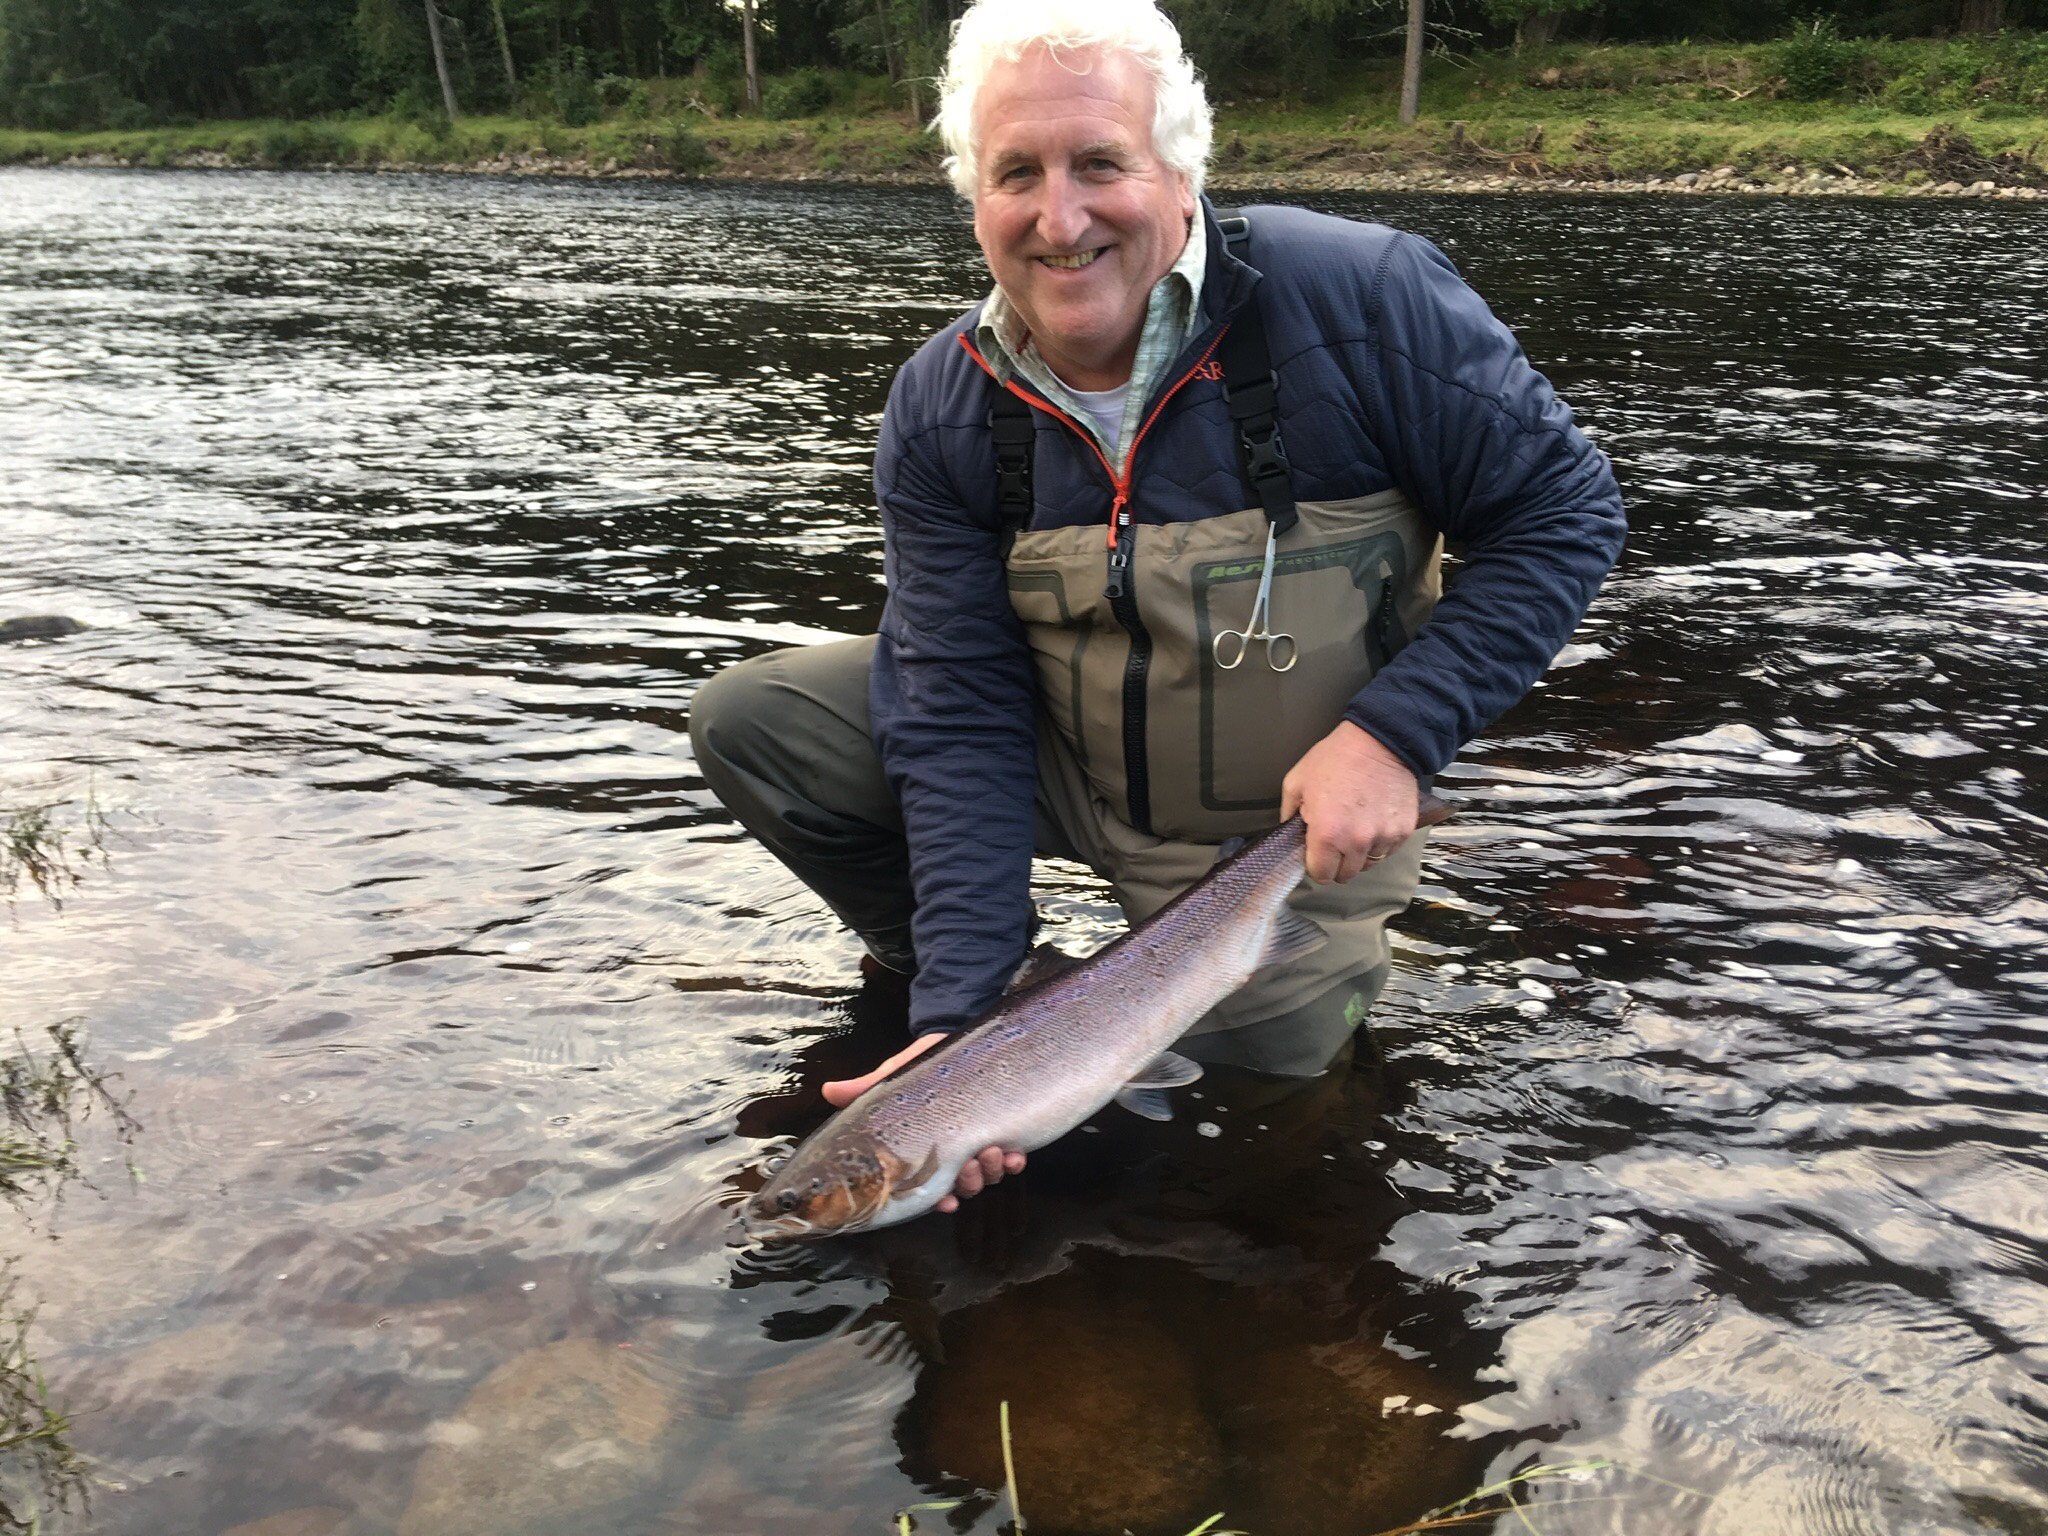 Tam Brown, looking happy with his 7 lb. fish from Garden Pool on Altyre Estate, River Findhorn